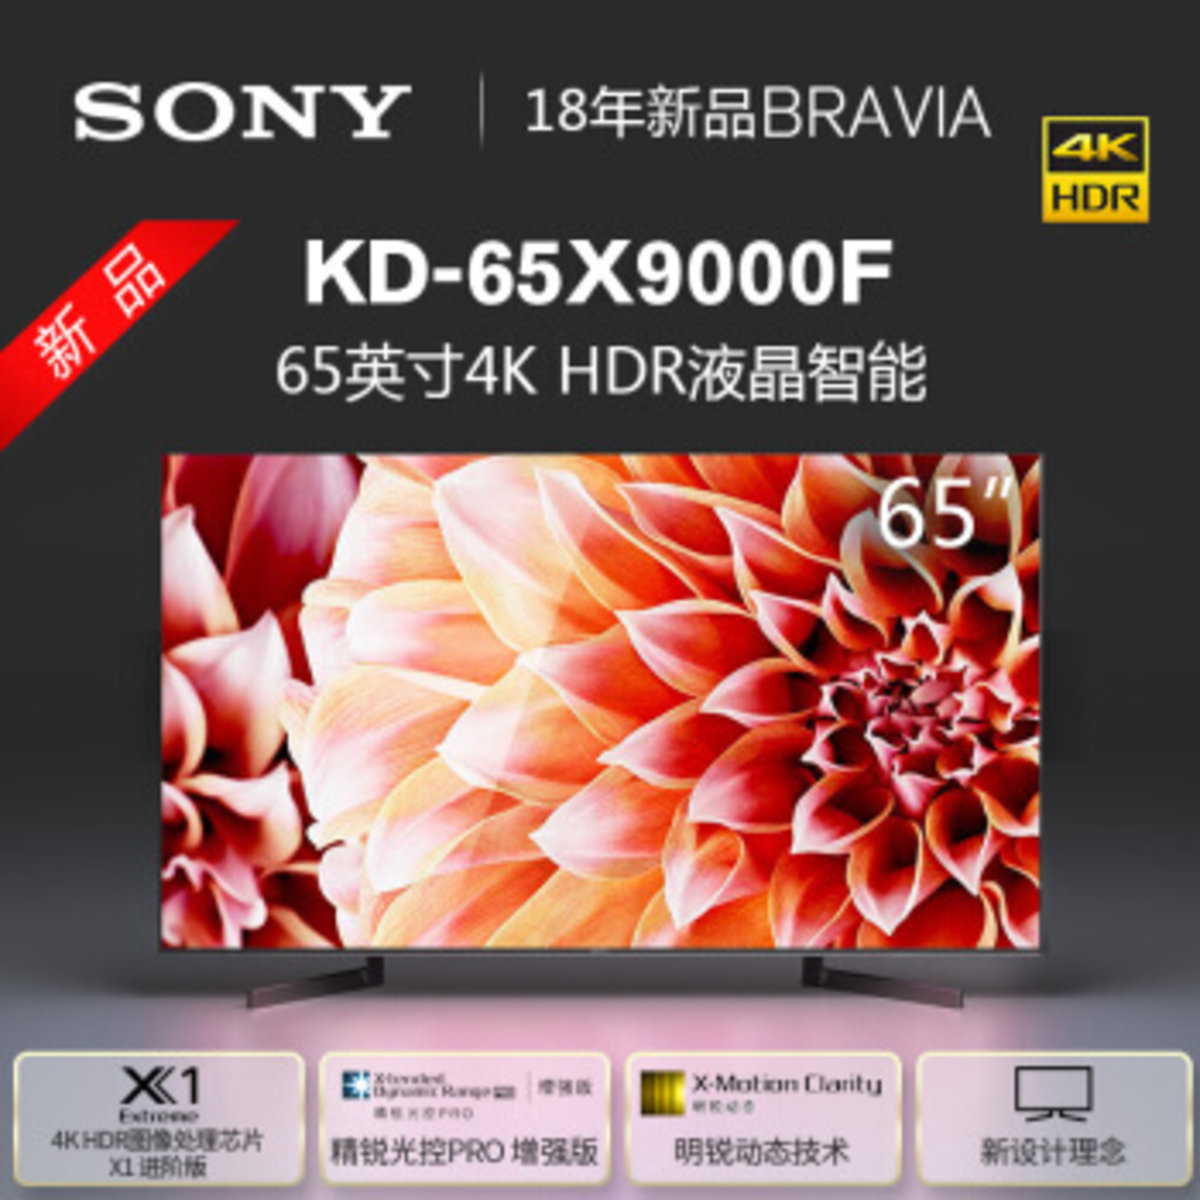 Sony | KD-65X9000F 65 HDR TV 4K android tv (3 year warranty